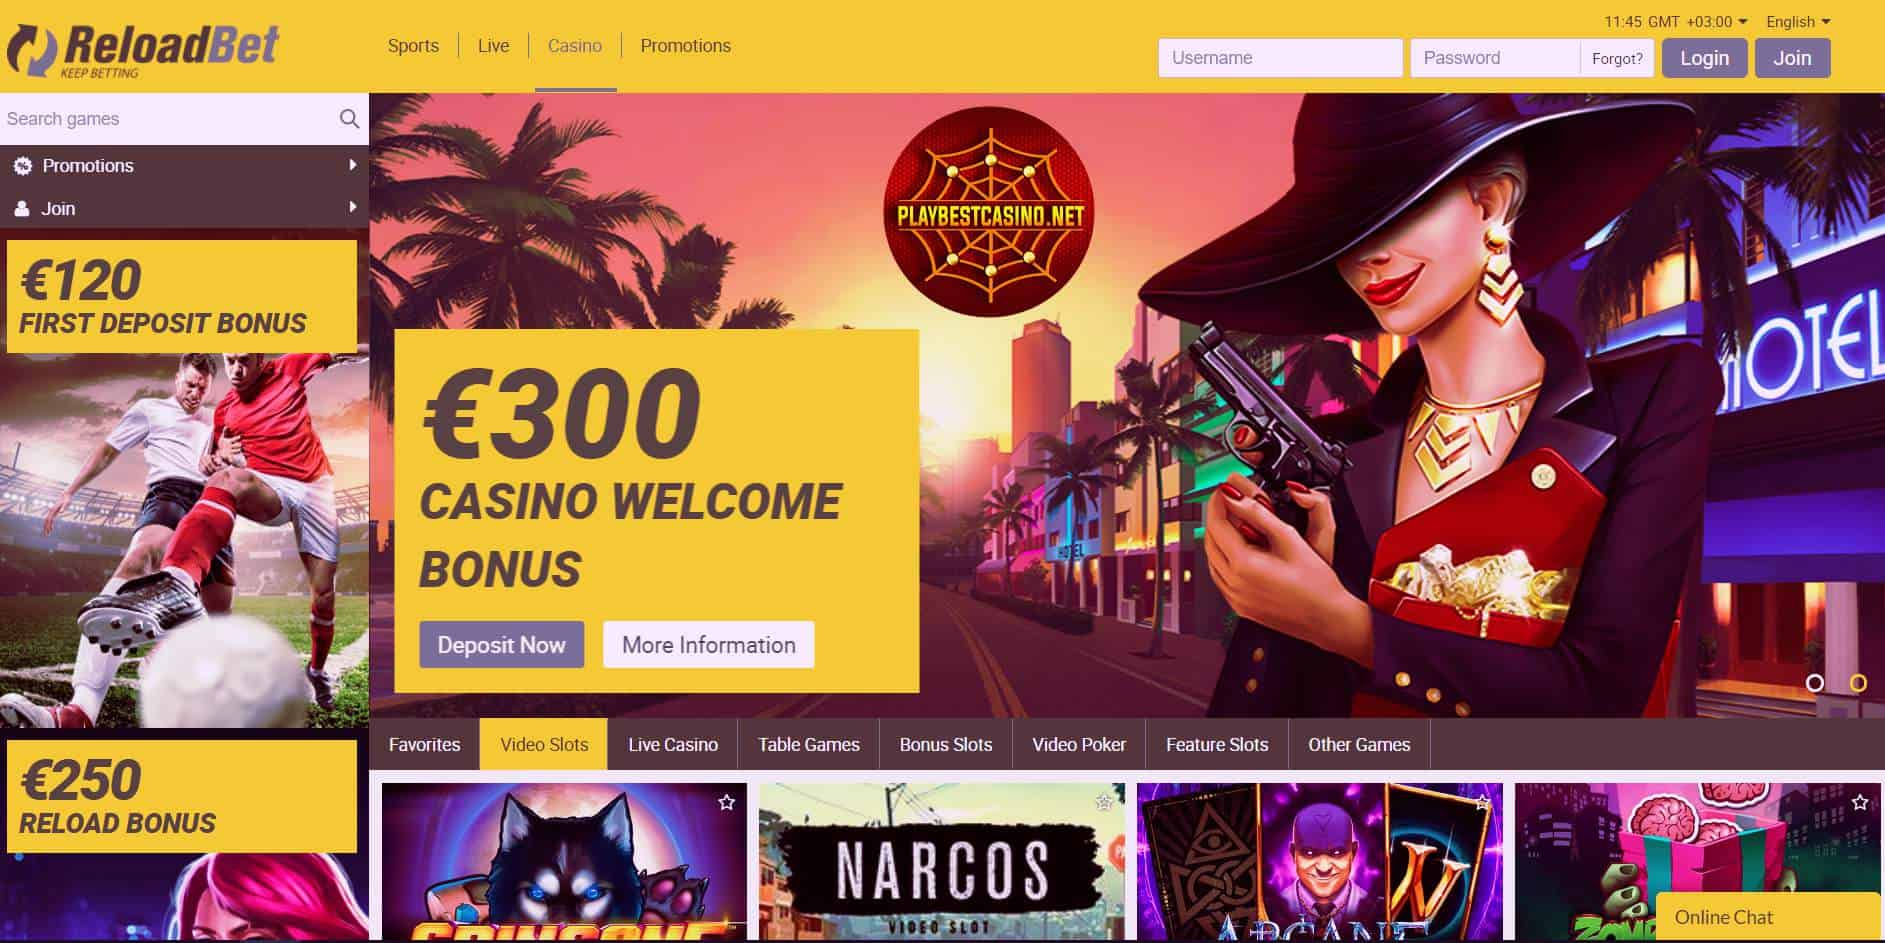 ReloadBet.com Review! New casino and sports betting with great experience!